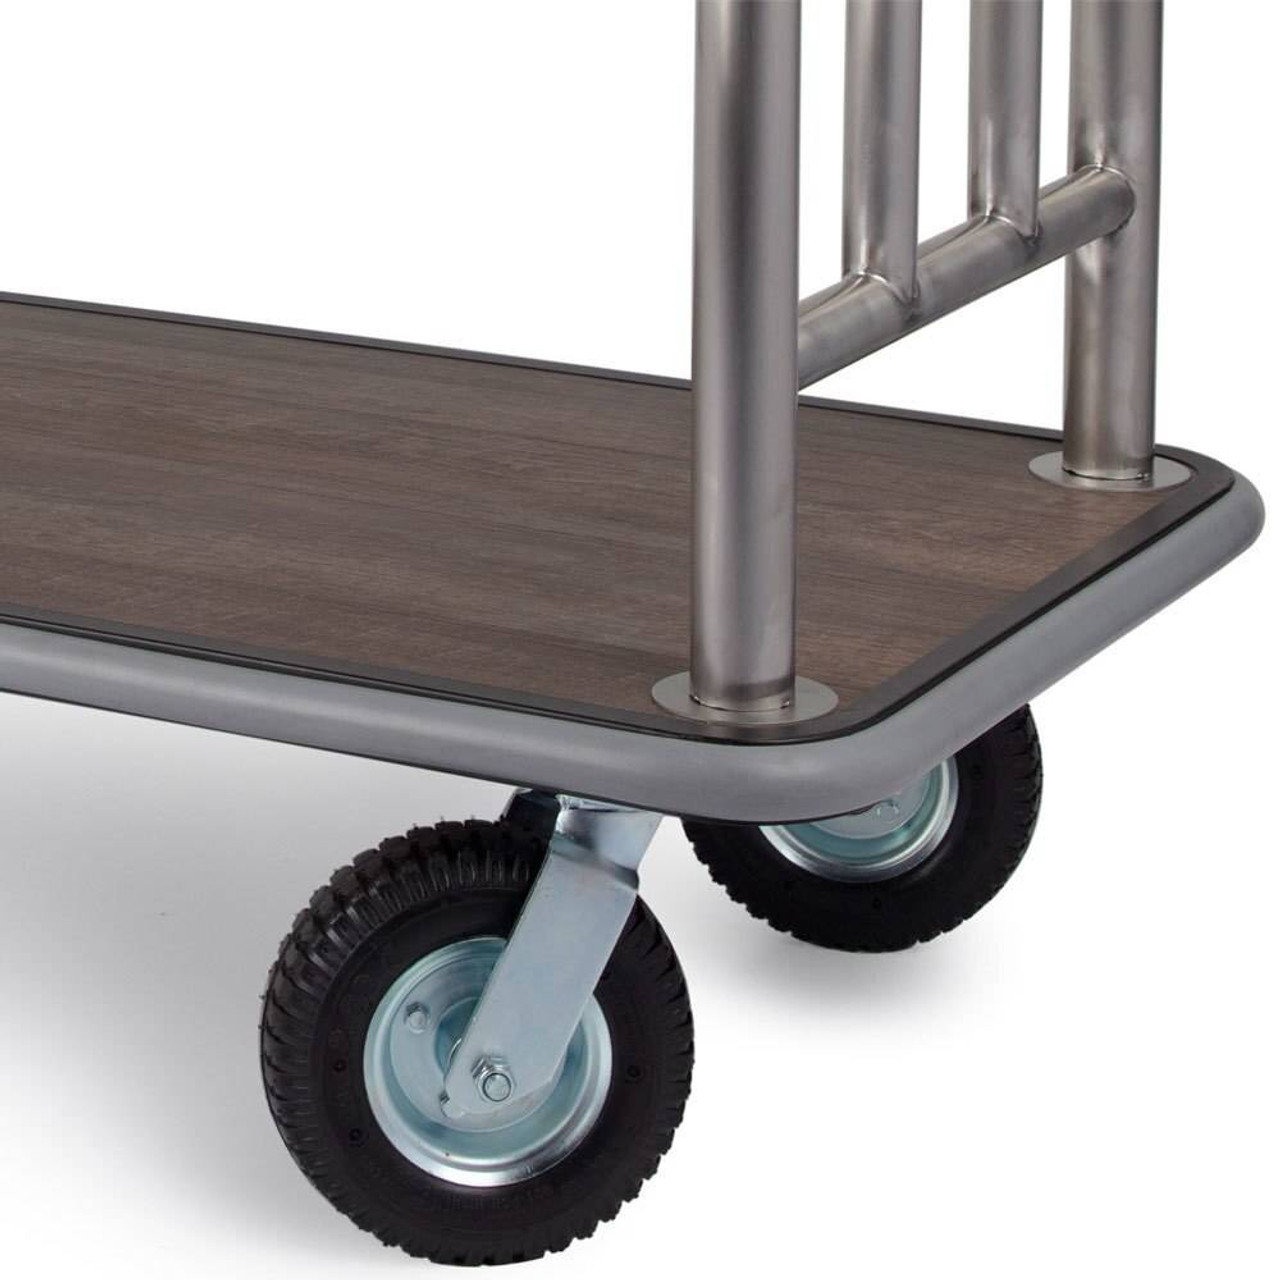 HOSPITALITY 1 SOURCE HOSPITALITY 1 SOURCE or LUGGAGE CARTS or ESTATE SERIES or BRUSHED STAINLESS STEEL or BELLMANS CART